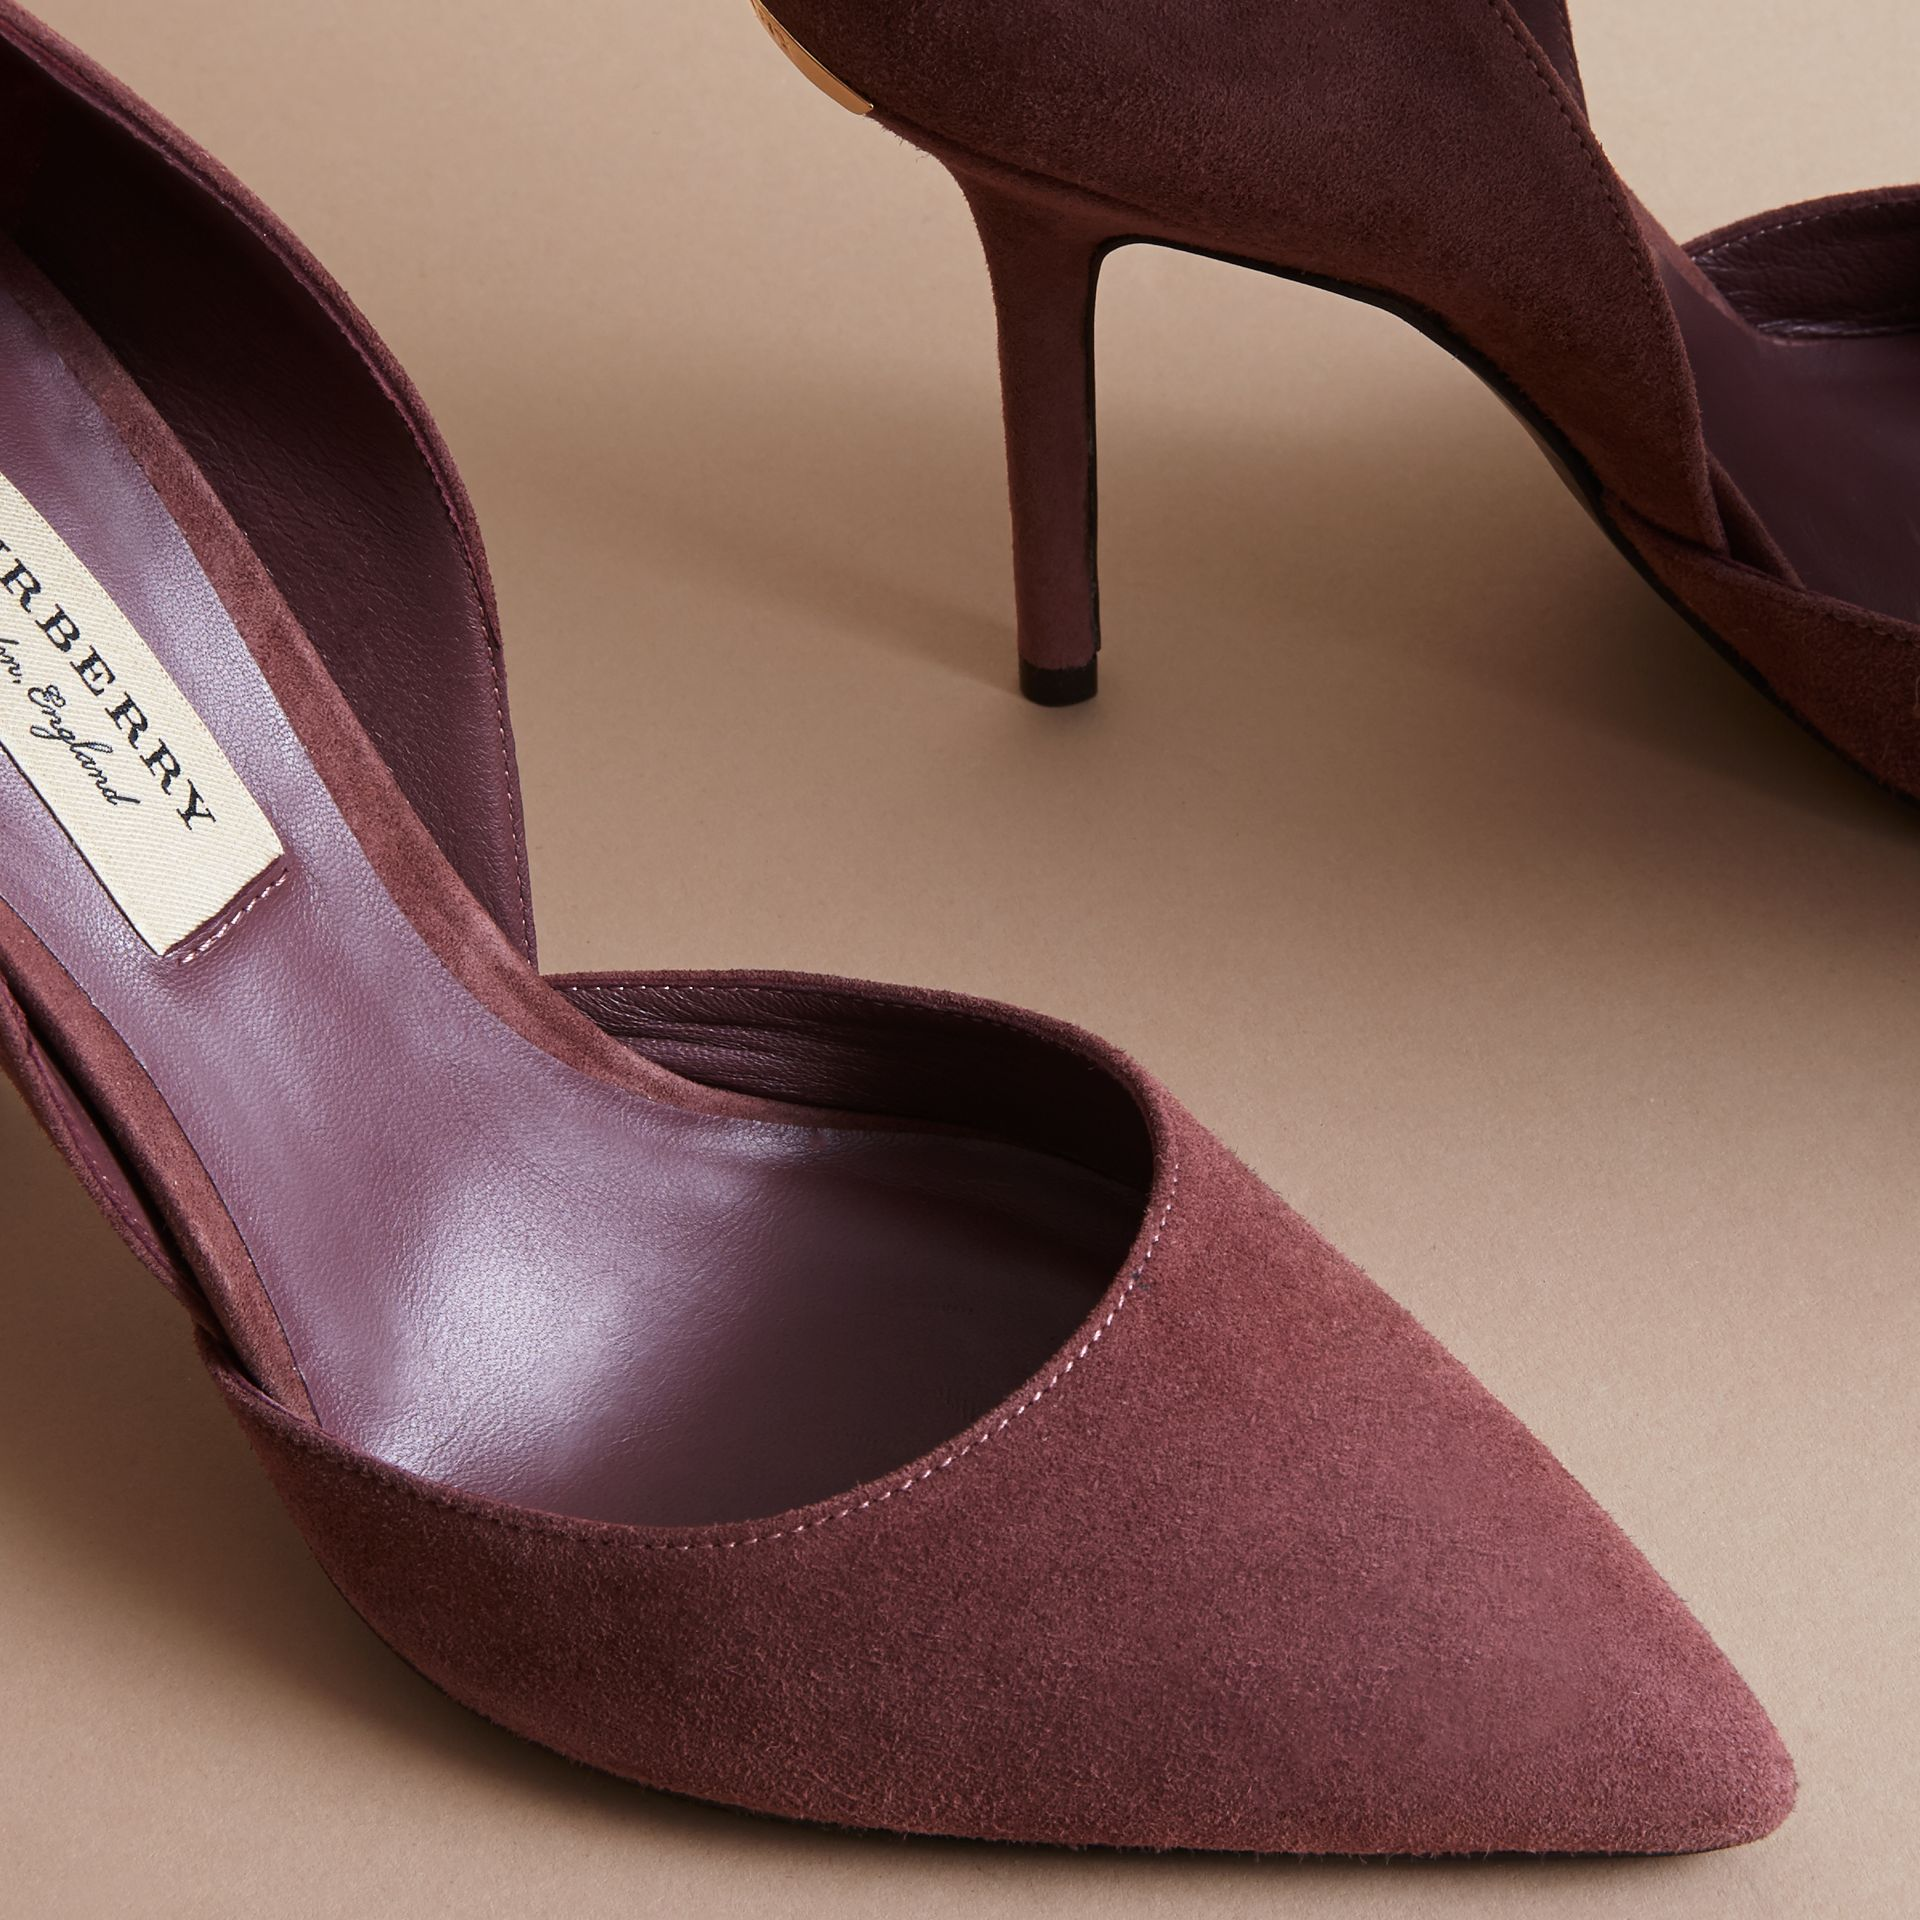 Escarpins d'Orsay à bout pointu en cuir velours (Rose Taupe) - Femme | Burberry - photo de la galerie 5